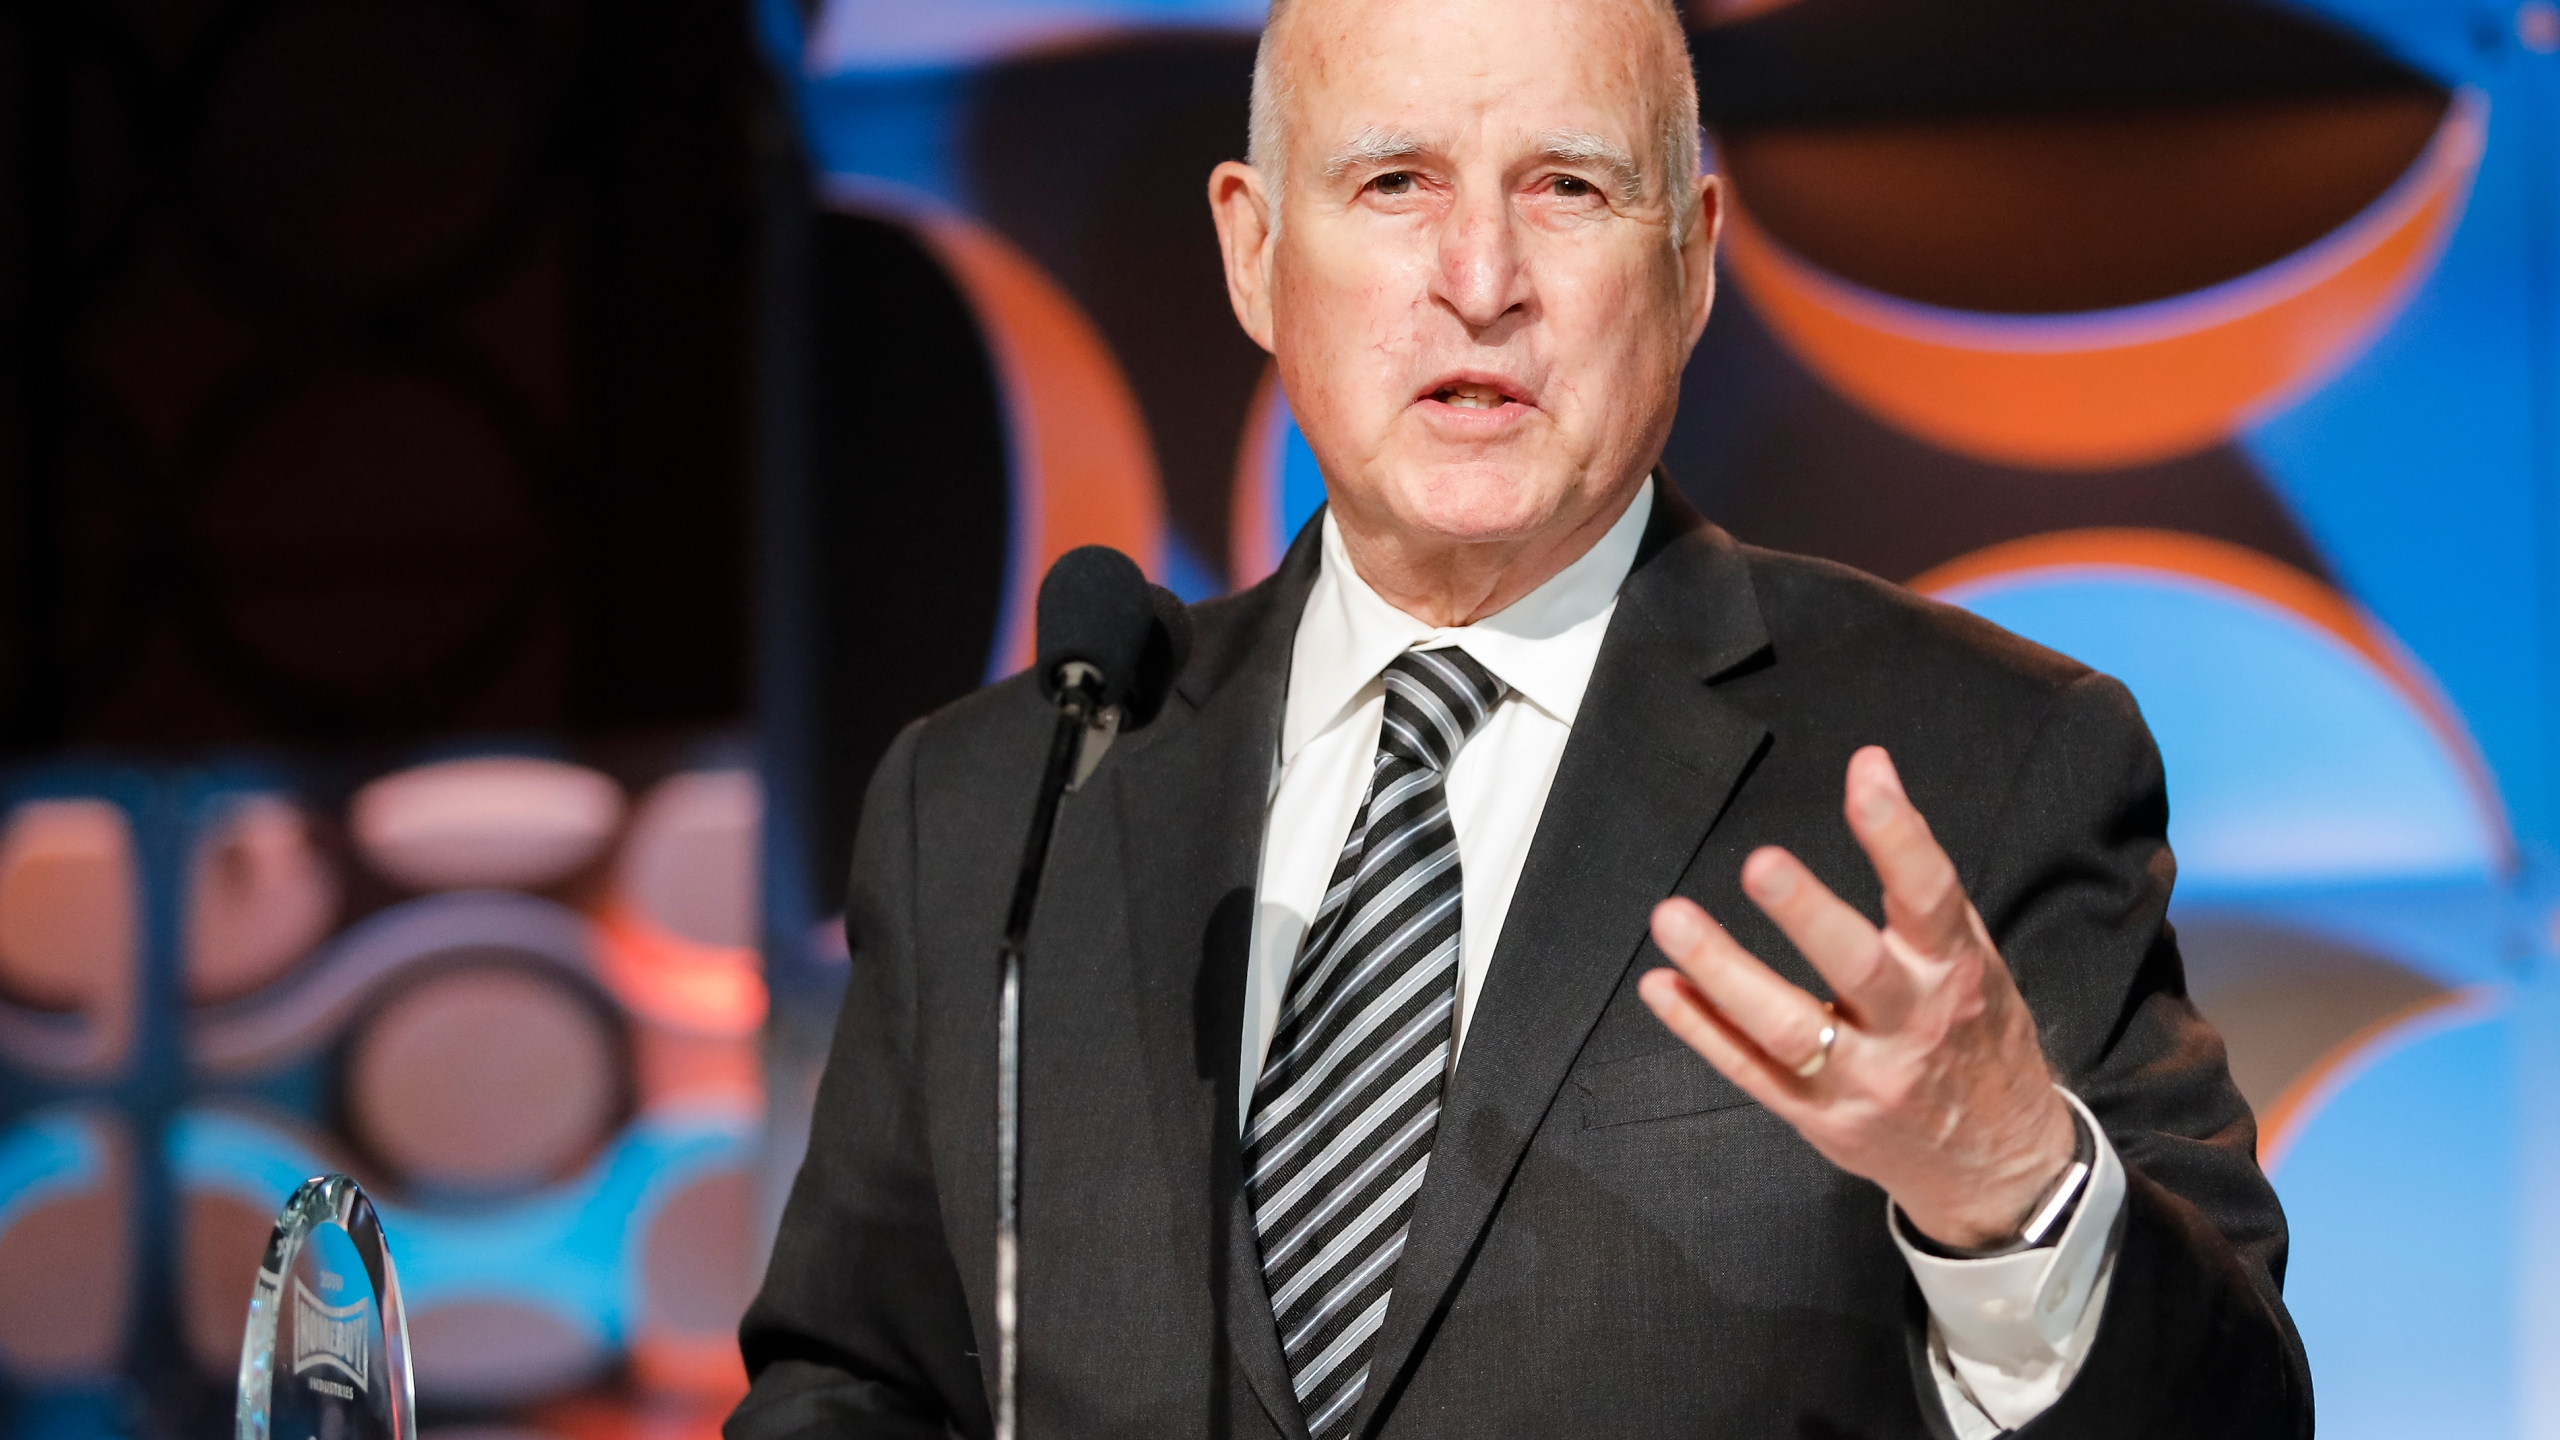 Former Gov. Jerry Brown receives an award from Homeboy Industries in Los Angeles on March 30, 2019. (Credit: Tibrina Hobson / Getty Images for Homeboy Industries)